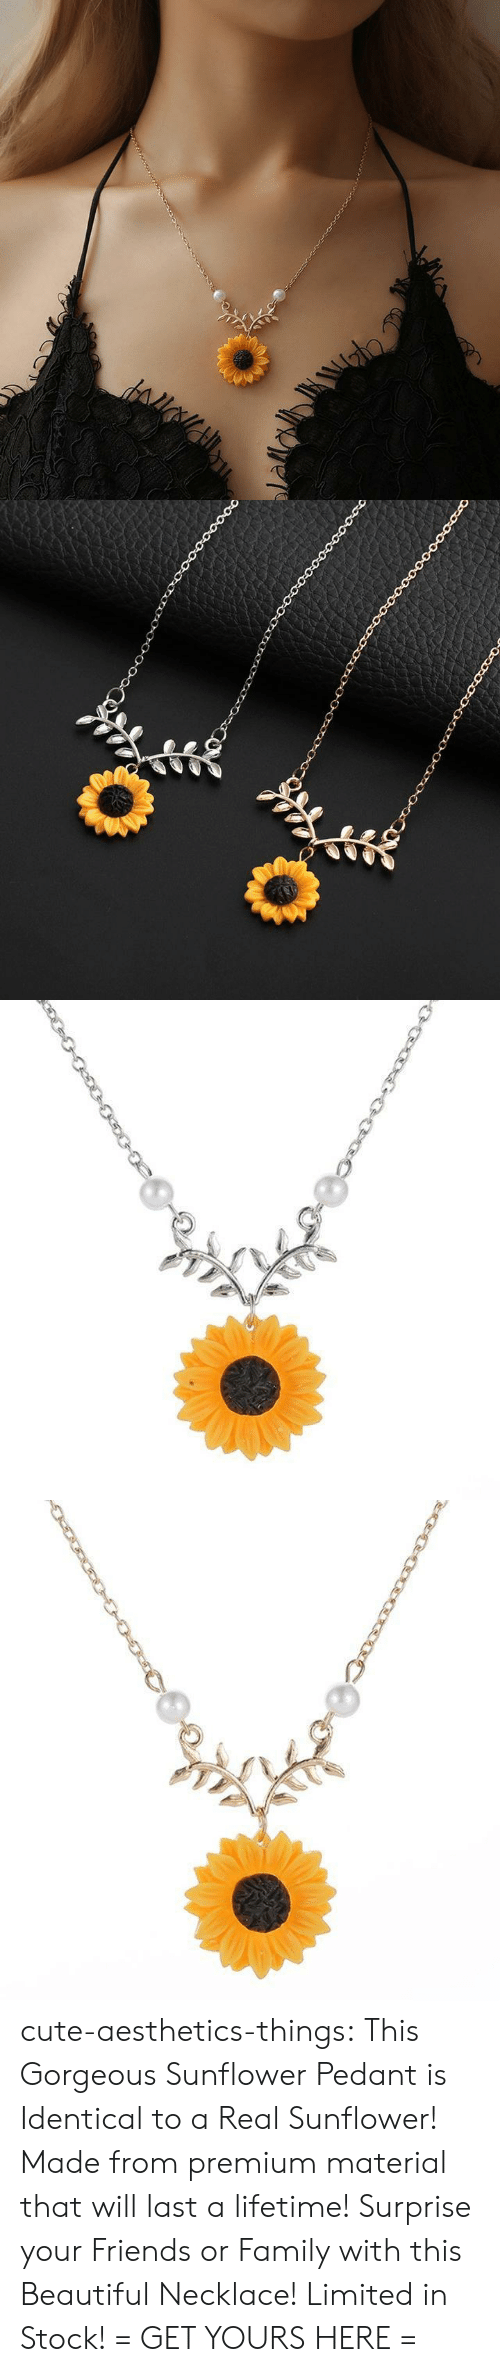 Beautiful, Cute, and Family: cute-aesthetics-things: This Gorgeous Sunflower Pedant is Identical to a Real Sunflower! Made from premium material that will last a lifetime! Surprise your Friends or Family with this Beautiful Necklace! Limited in Stock! = GET YOURS HERE =